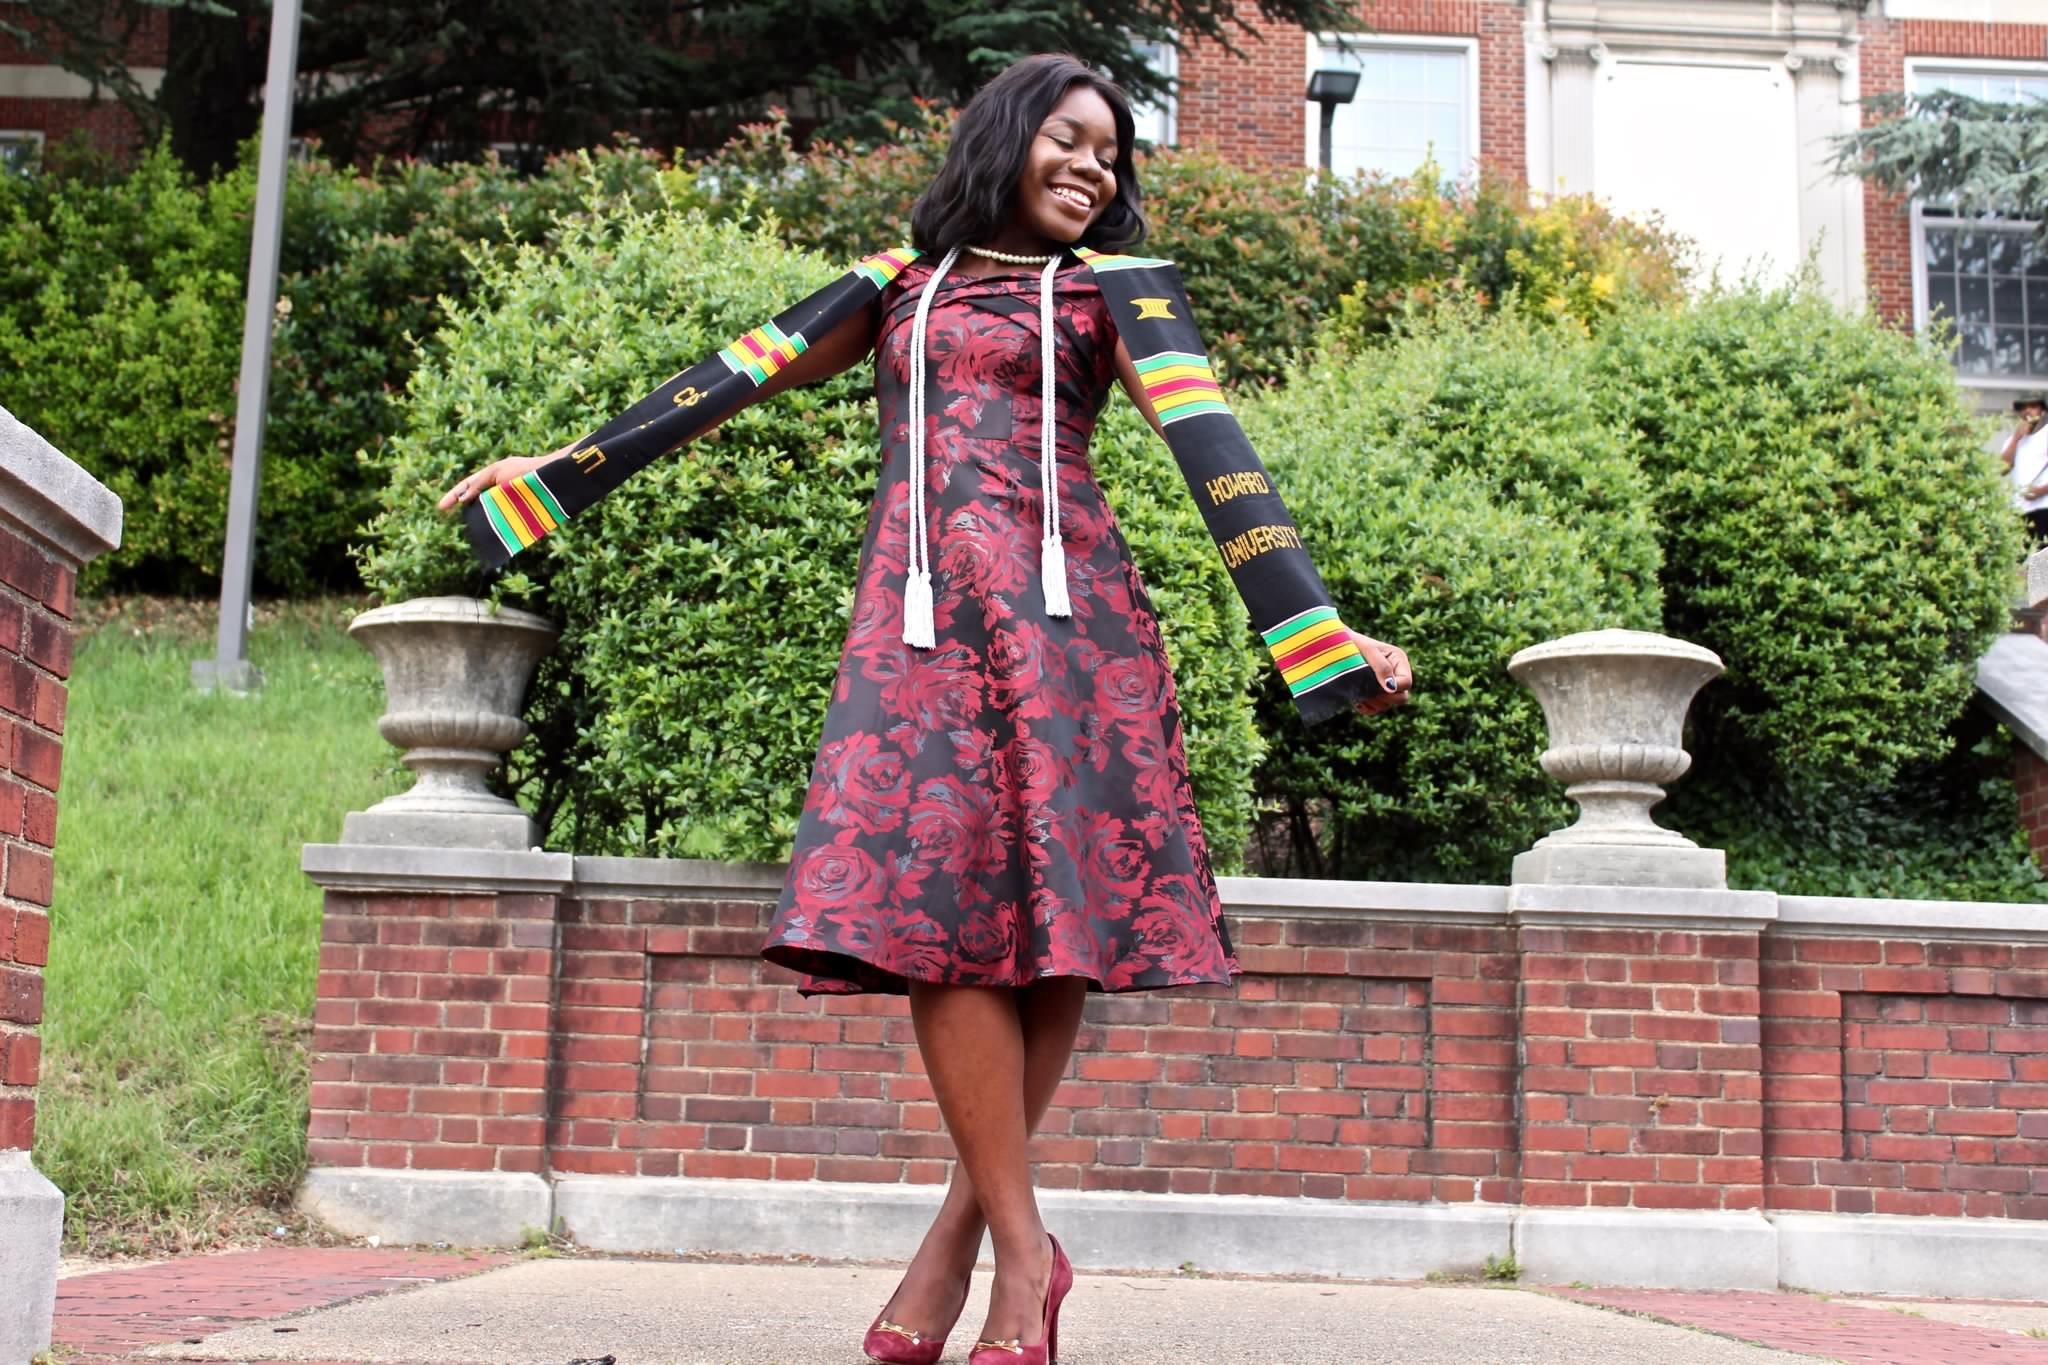 MEET NKECHI, THE 18 YEAR OLD COLLEGE GRADUATE WHO IS ALREADY GOT PLANS FOR HER DOCTORATE DEGREE